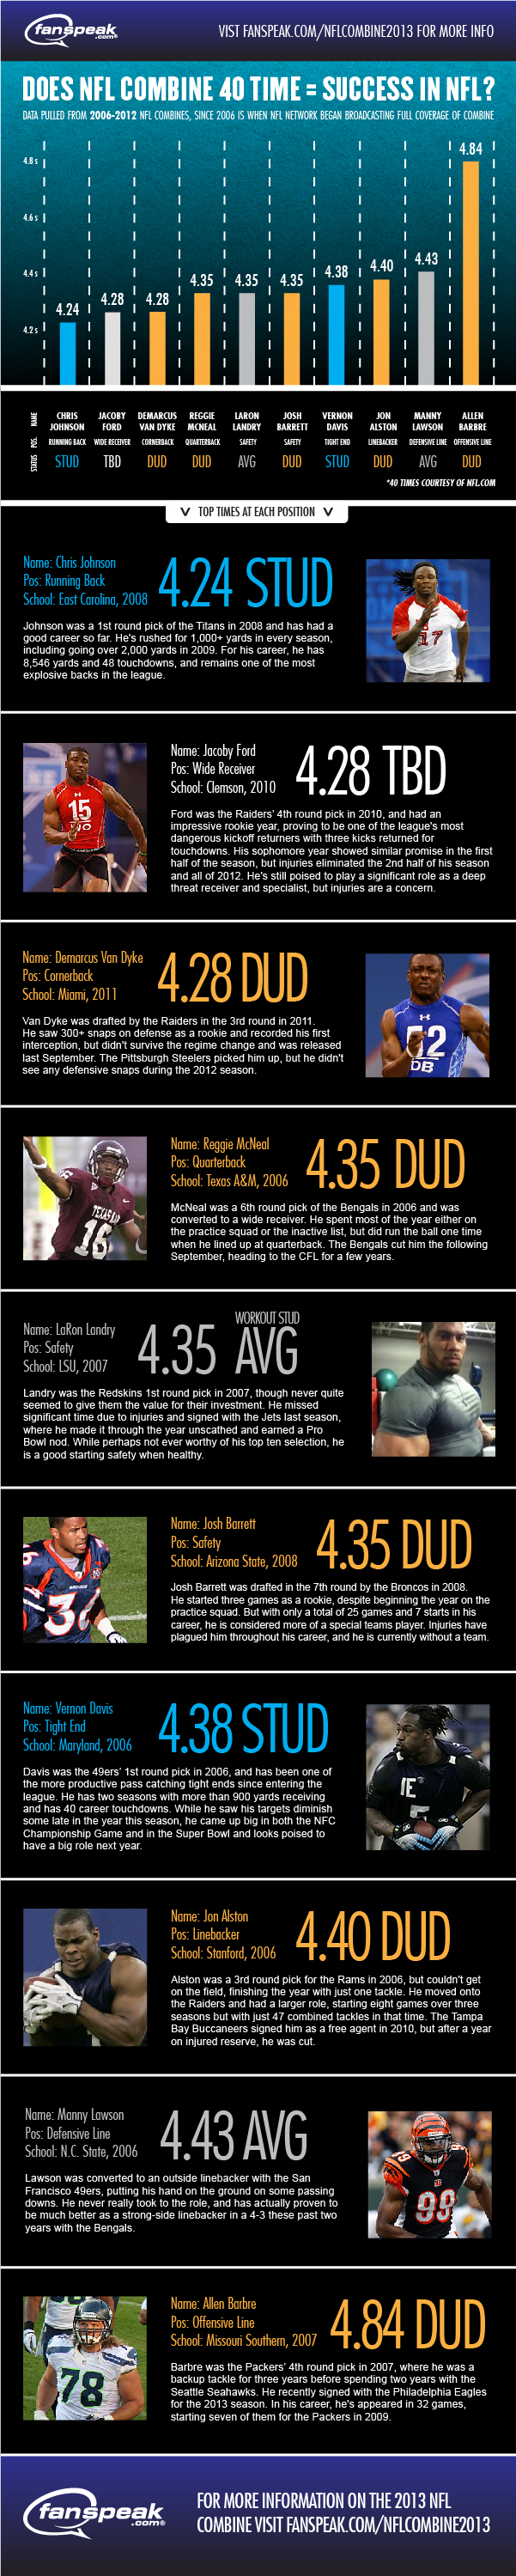 nfl-combine-40-times Infographic: Does Combine 40 Time Equal Success in the NFL?